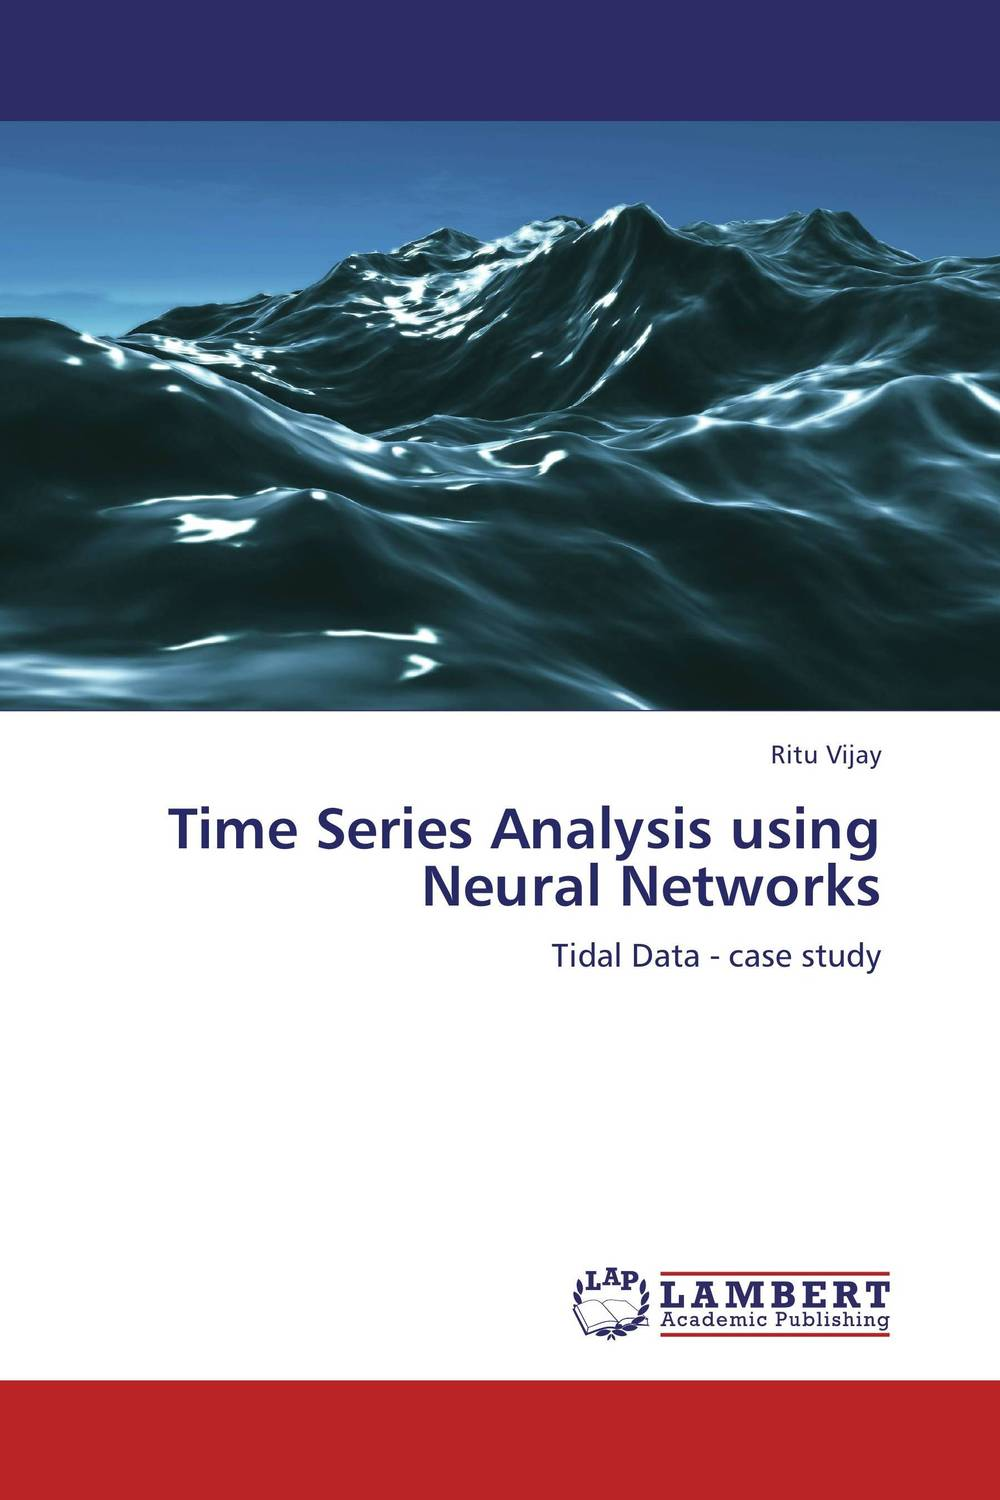 Time Series Analysis using Neural Networks software effort estimation using artificial neural networks